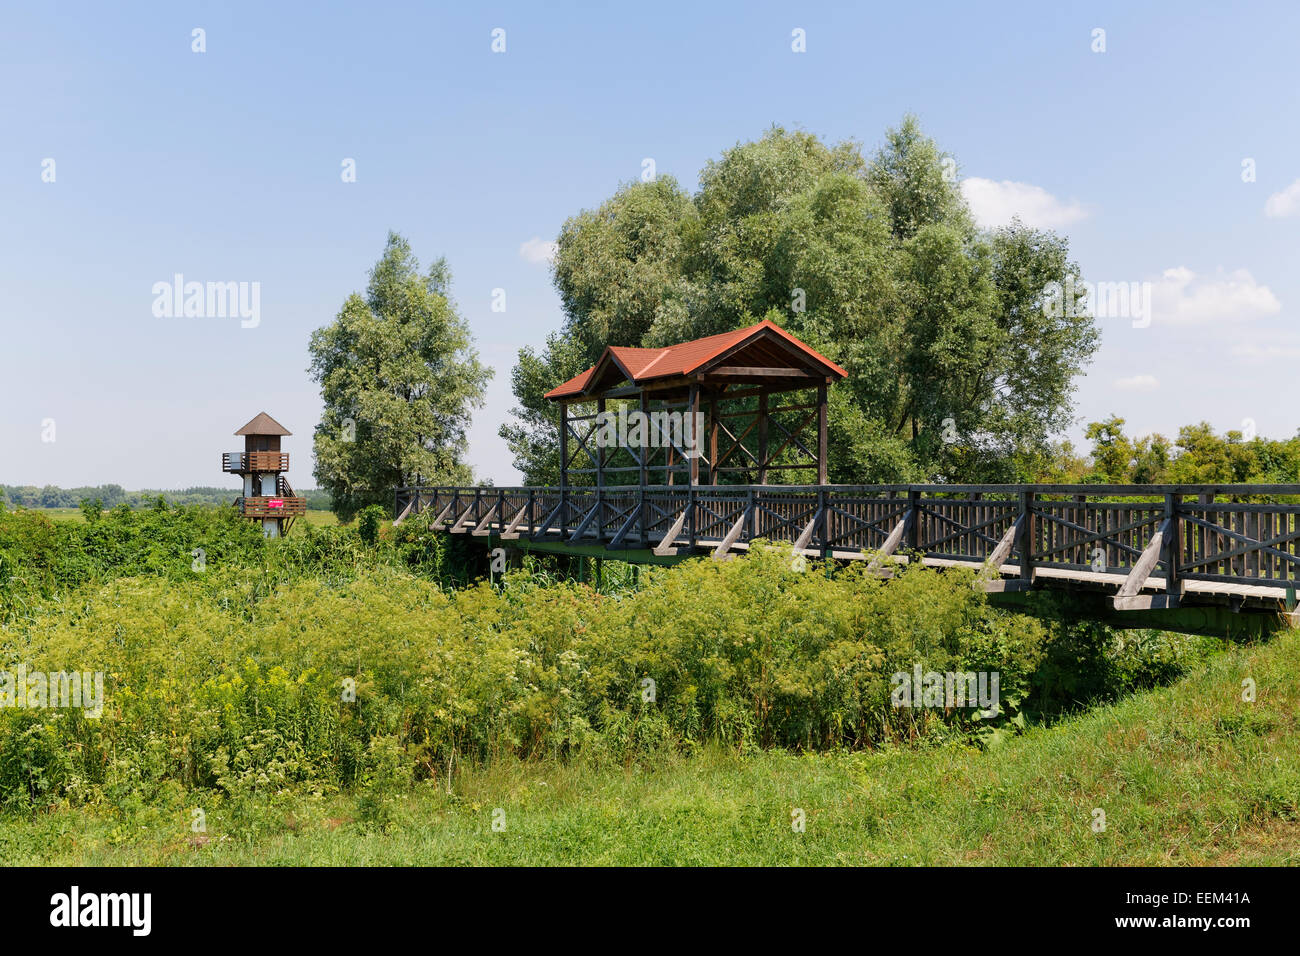 Andau bridge over the Einser-Kanal canal, Andau, Seewinkel, state border to Hungary, Northern Burgenland, Burgenland, - Stock Image